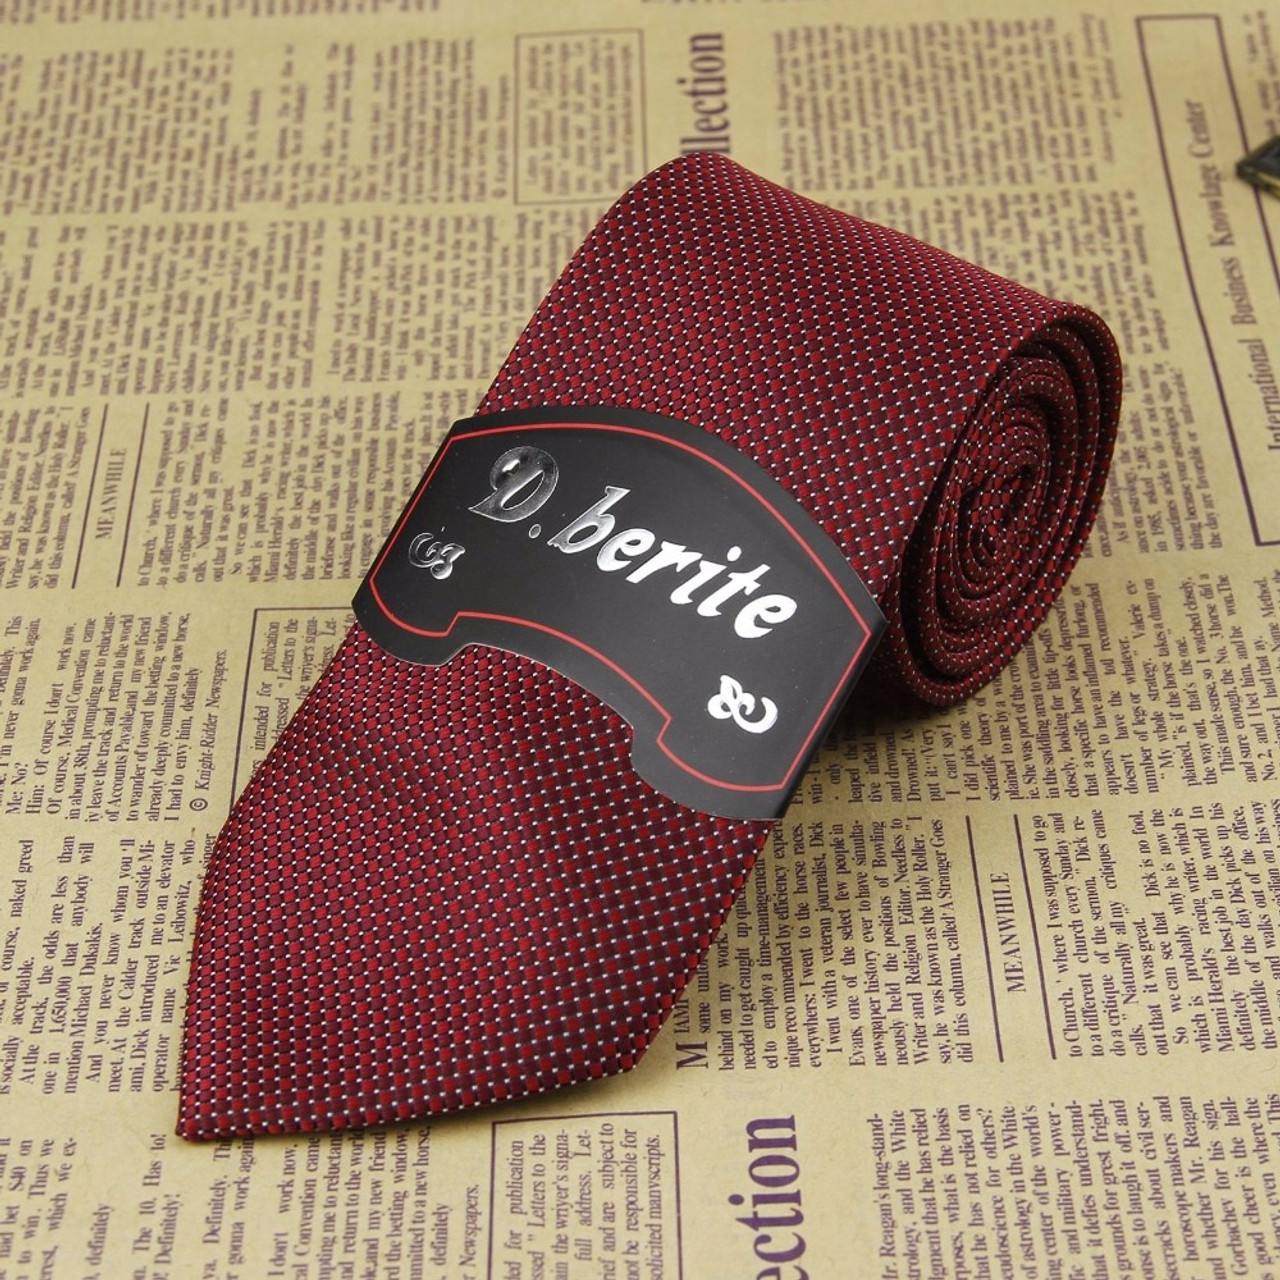 New Mens 100/% Silk Tie Necktie Striped Paisley Grid pattern JACQUARD Neck Ties